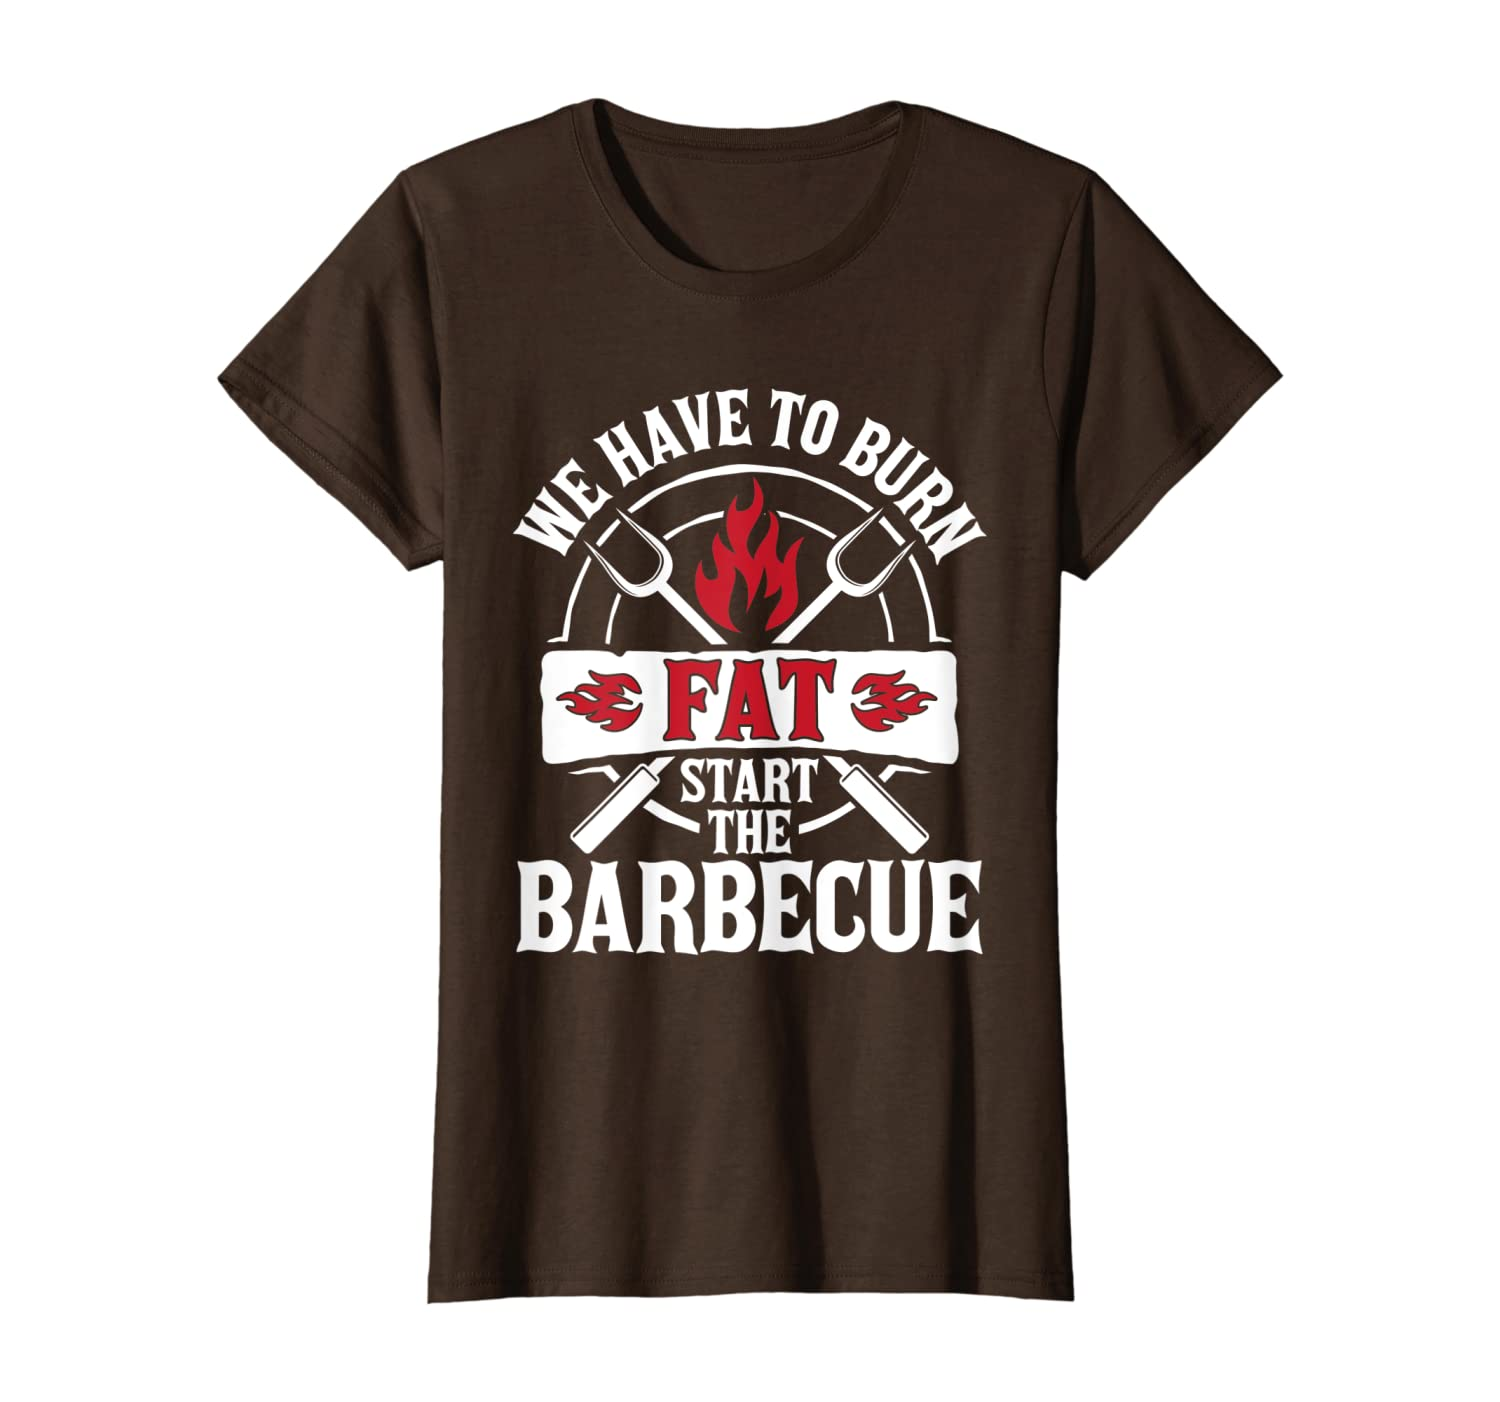 BBQ We Have To Burn Fat Barbecue Grill Butcher Grilling T-Shirt